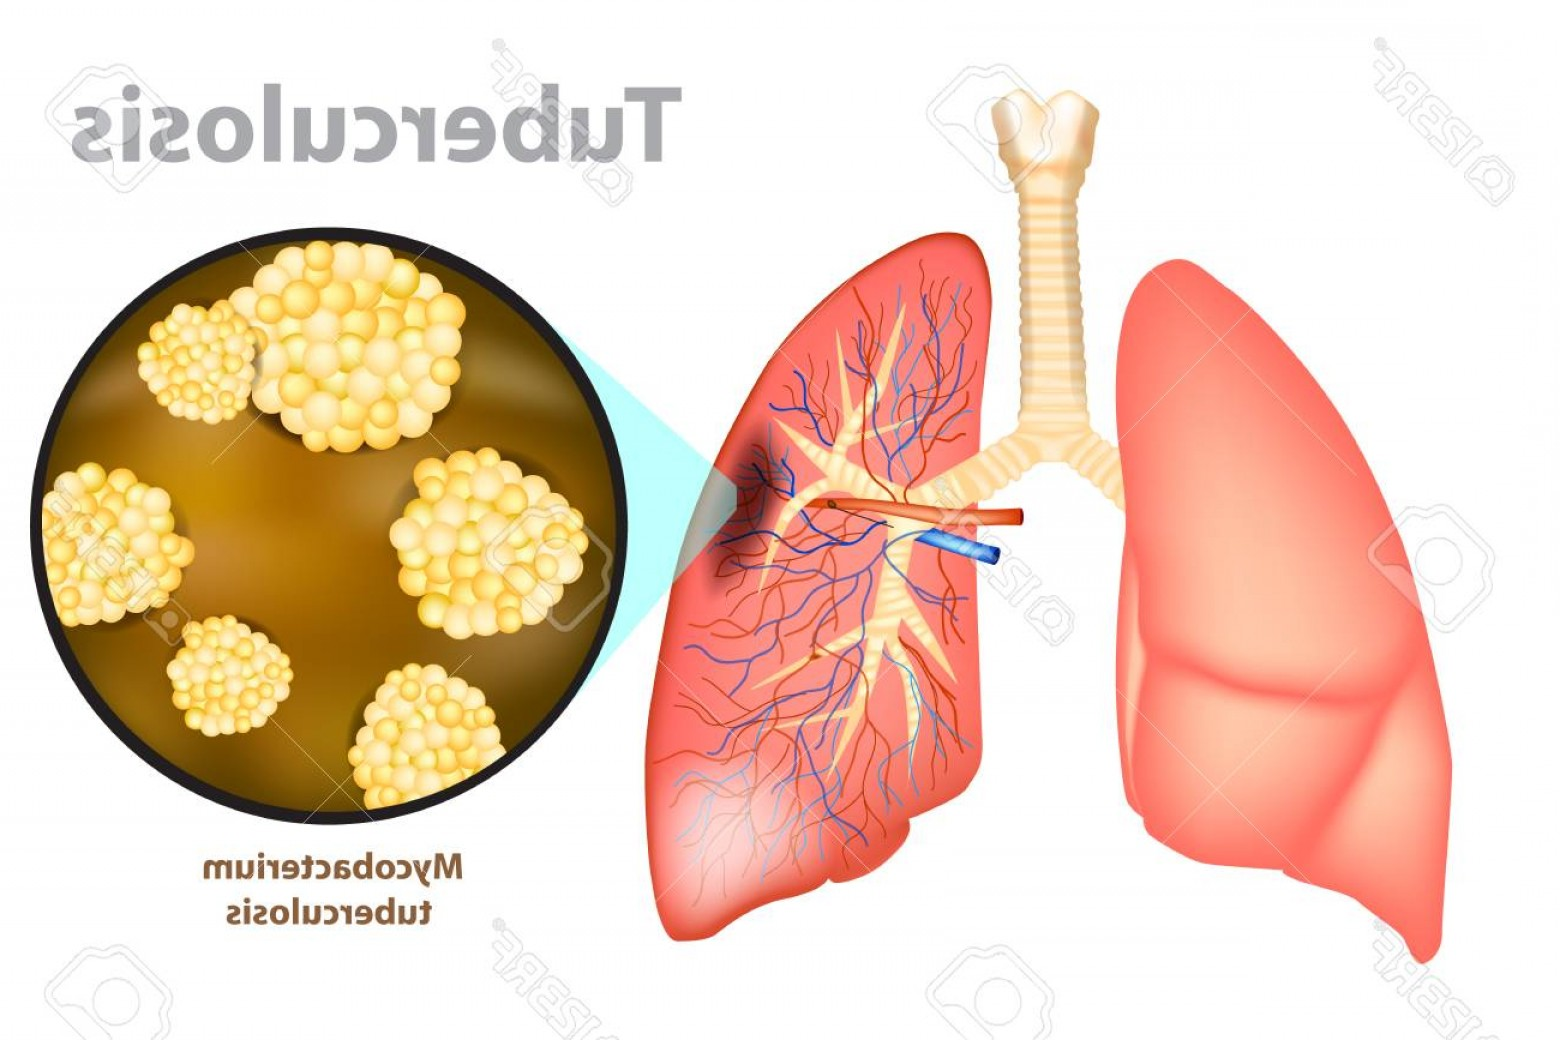 Infectious Disease Vector: Photostock Vector Tuberculosis Is An Infectious Disease Caused By The Bacterium Mycobacterium Tuberculosis